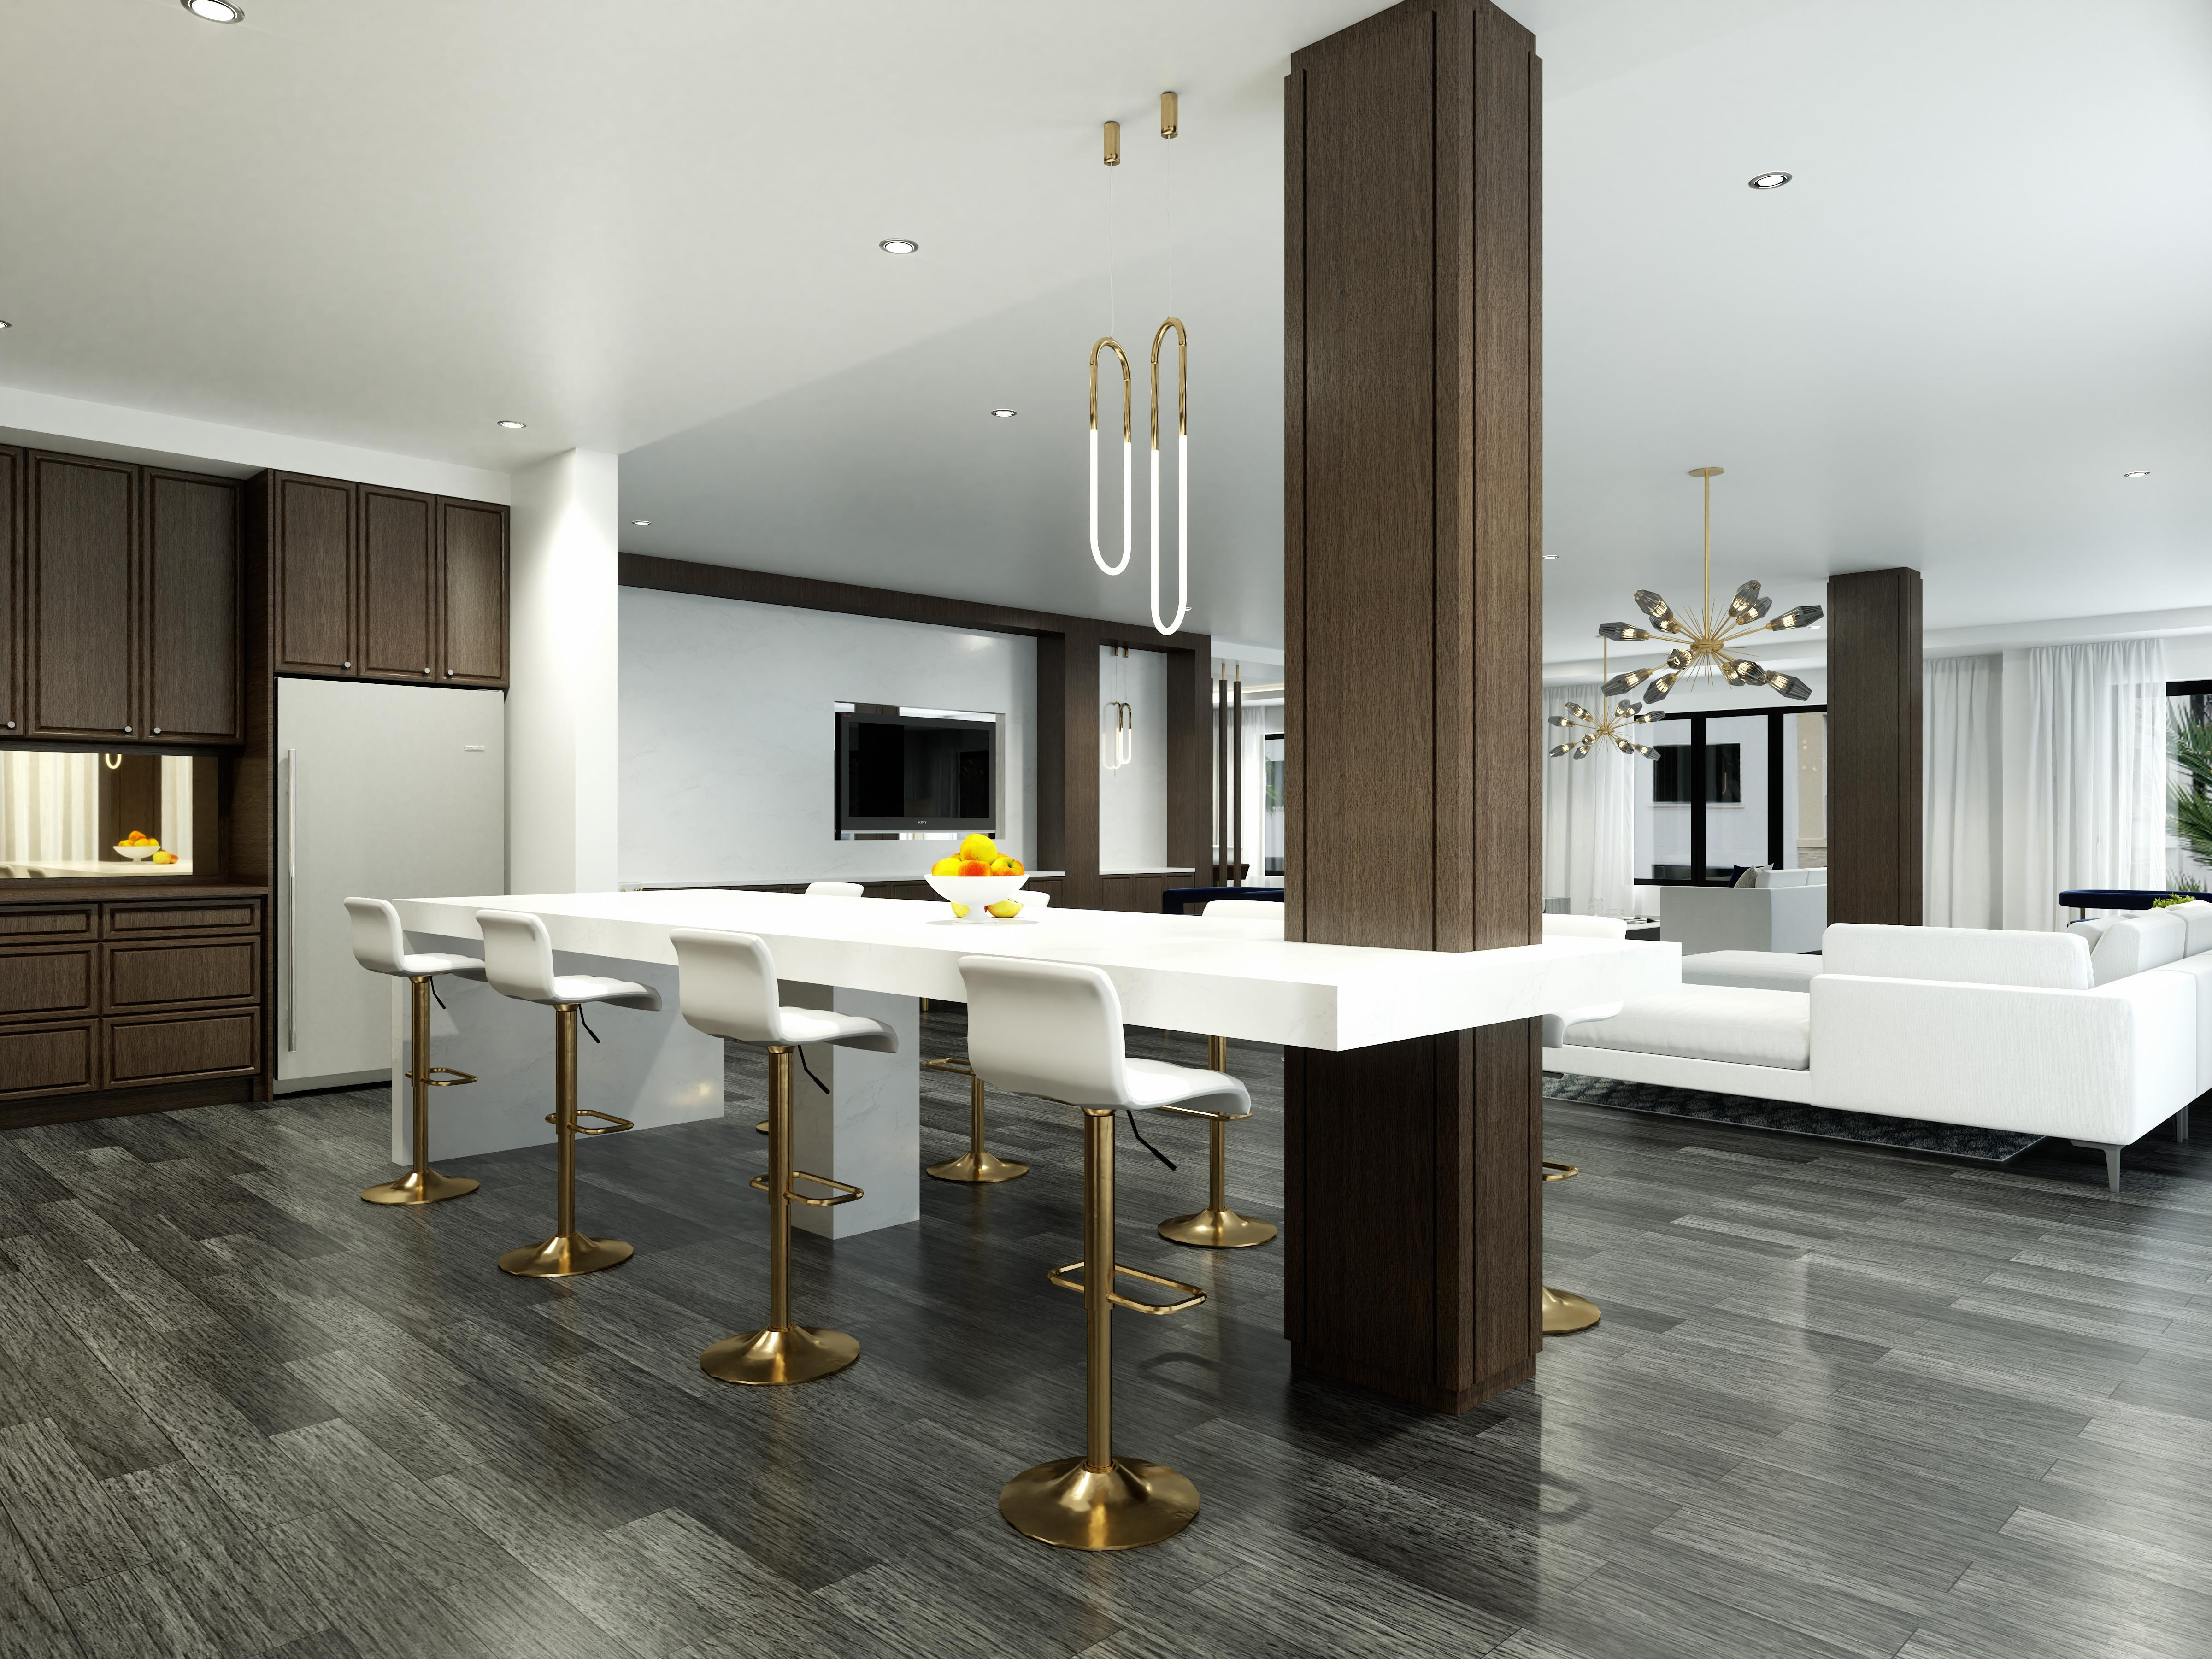 Kitchen featured in the Dante By The Ronto Group in Naples, FL